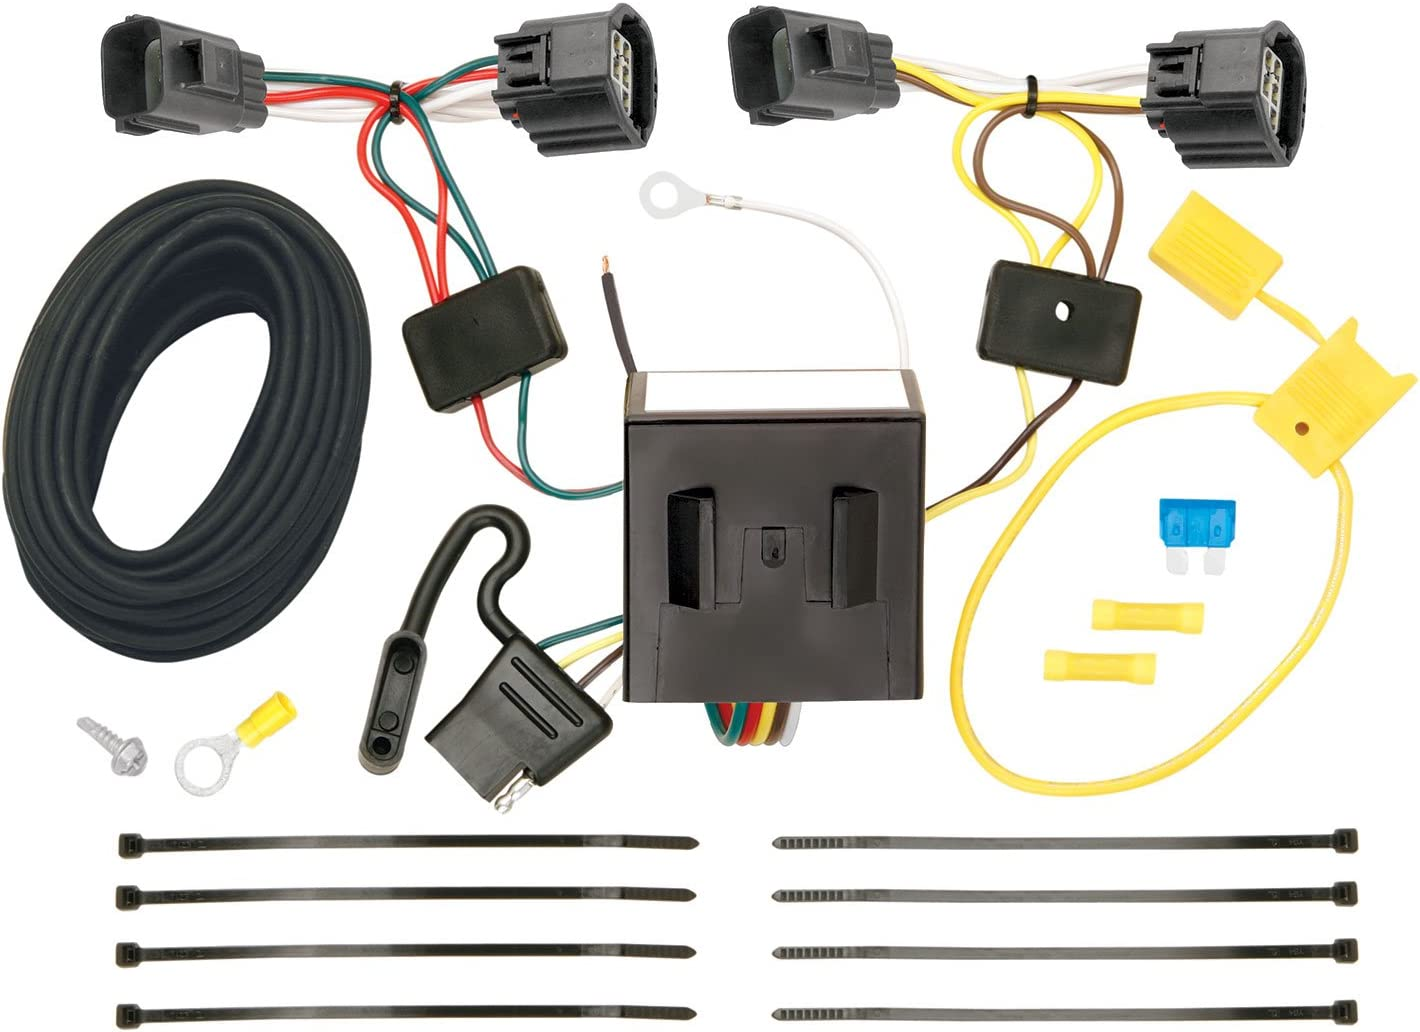 CURT 56334 Vehicle-Side Custom 4-Pin Trailer Wiring Harness for Select Dodge Nitro Jeep Liberty